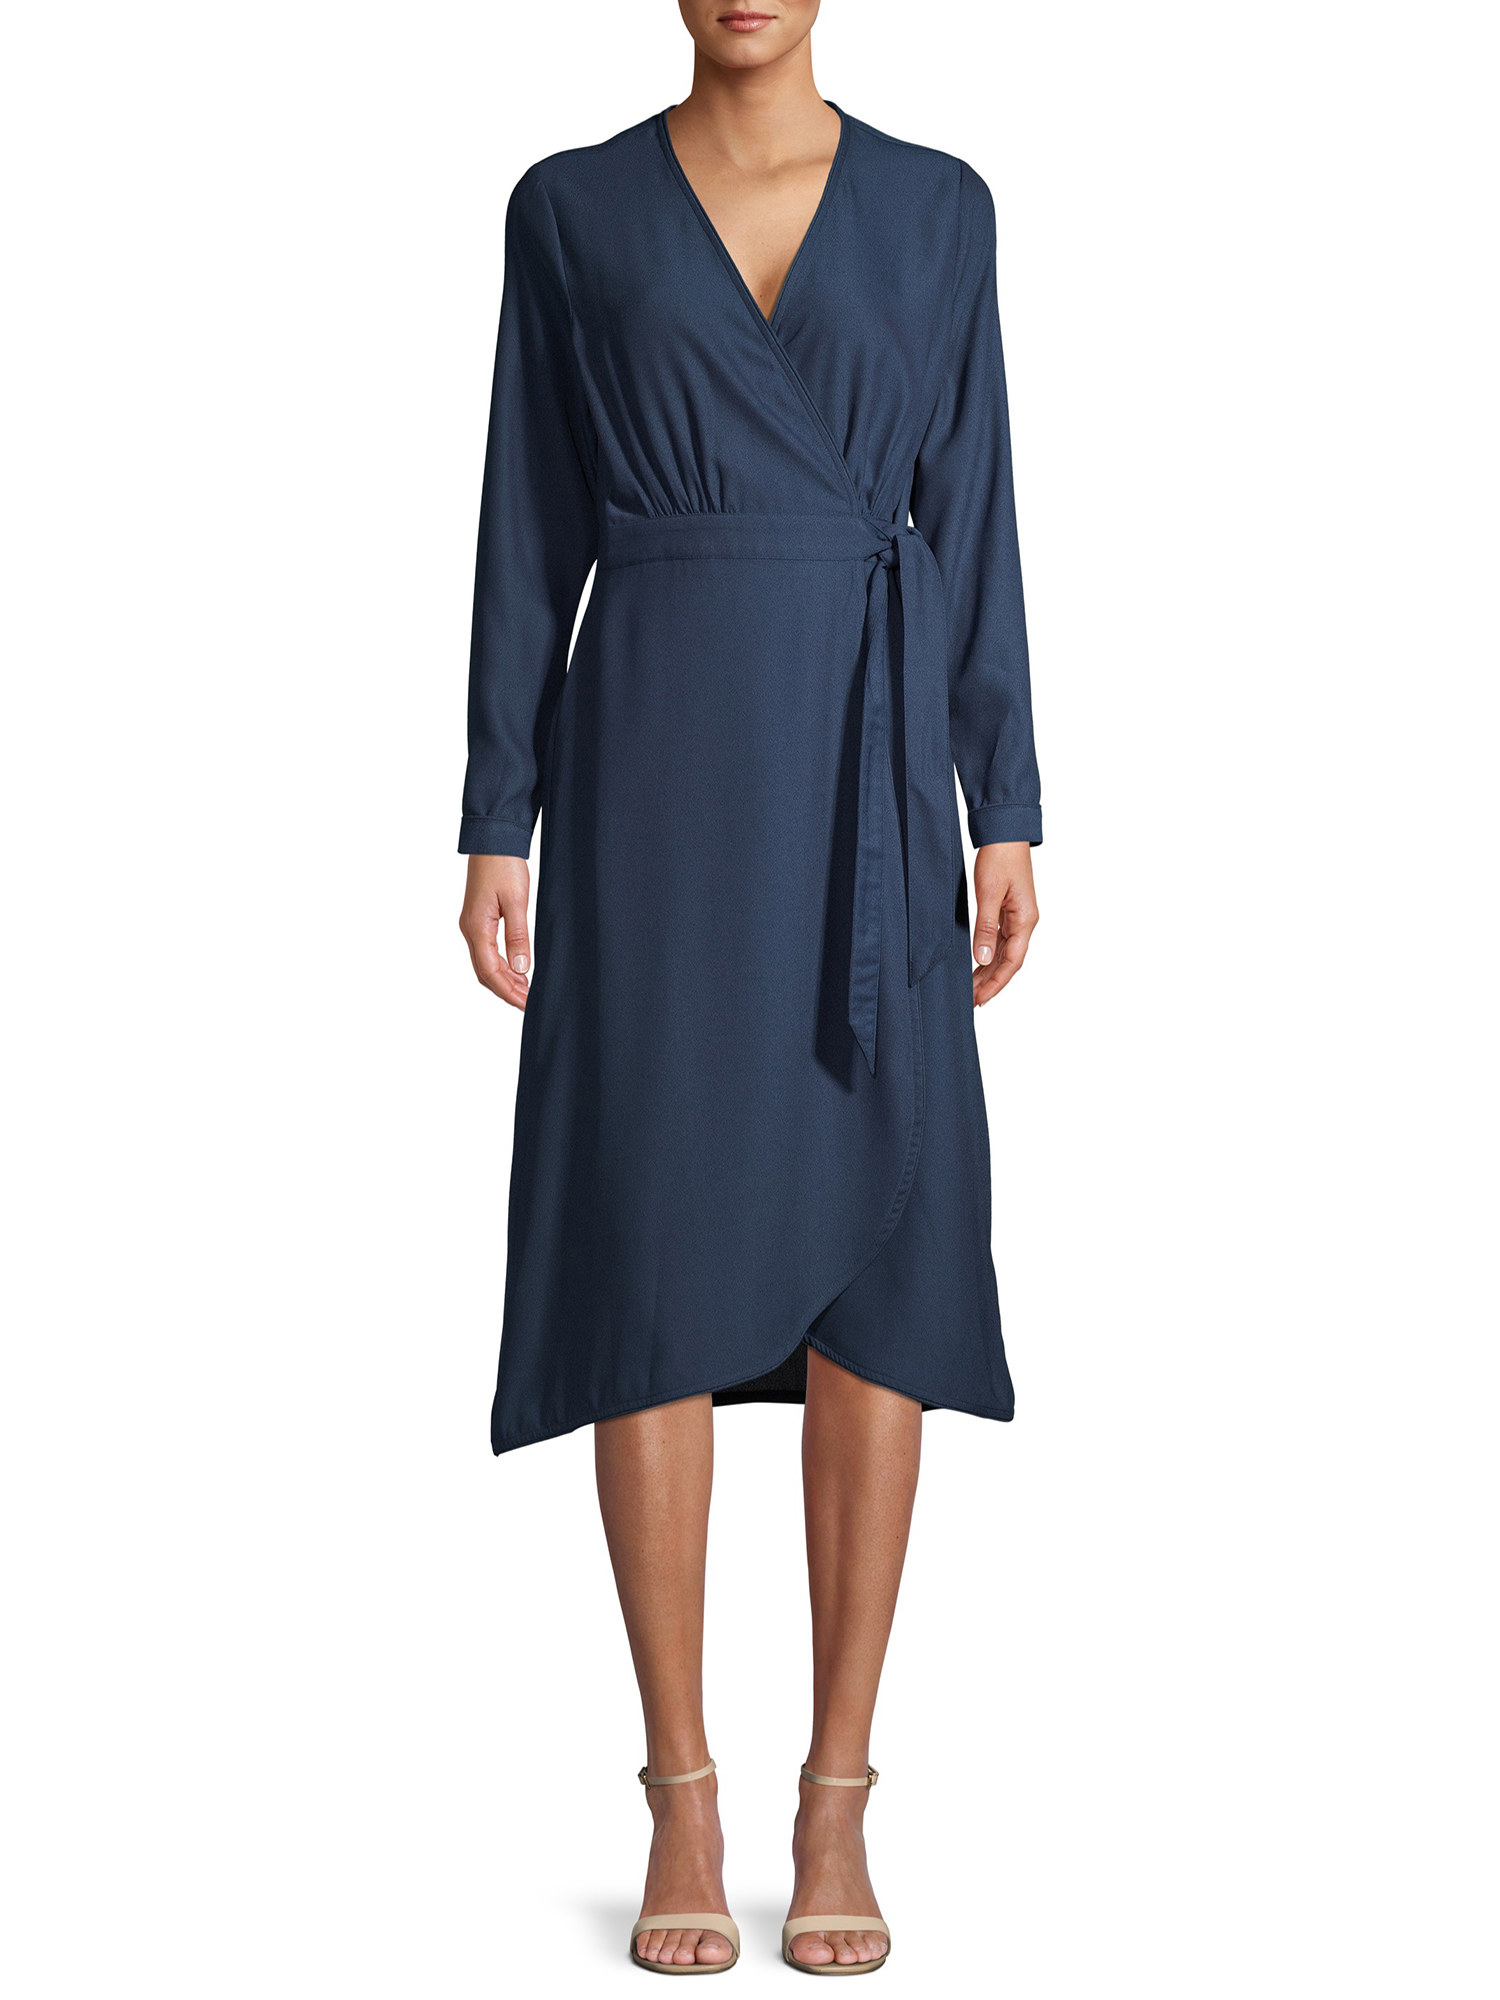 The navy blue midi wrap dress